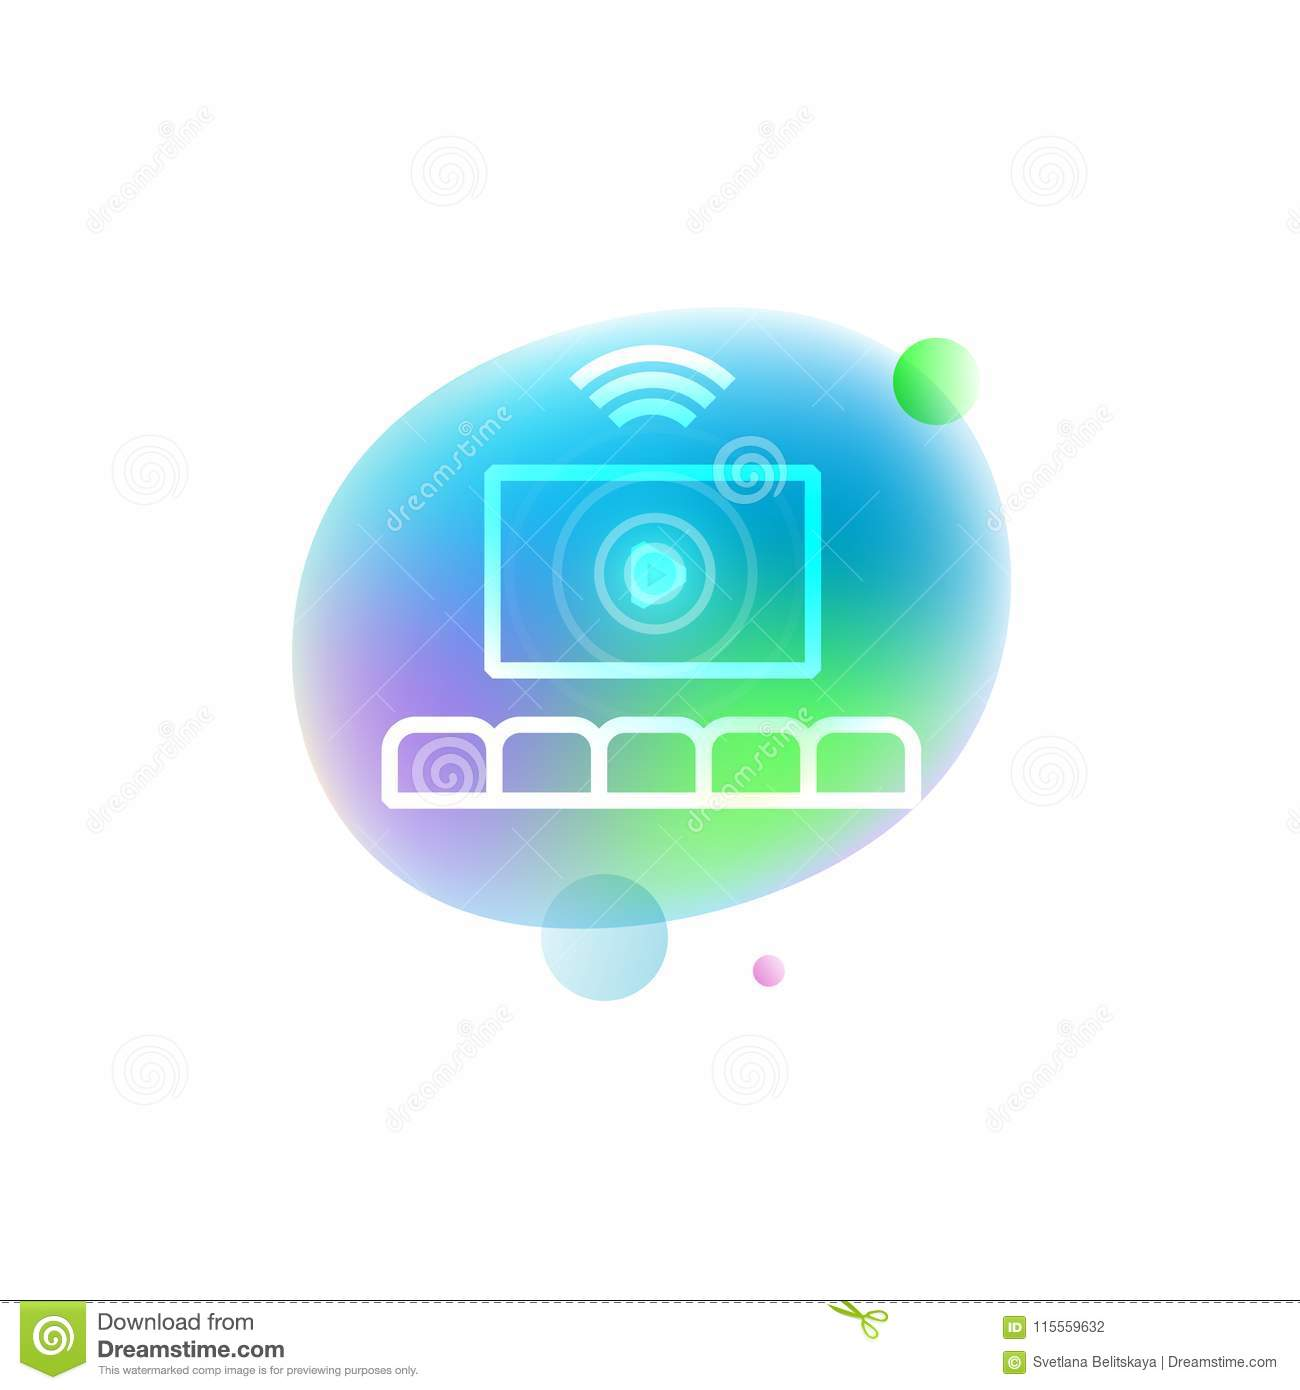 Home theater icon stock vector. Illustration of conceptual - 115559632